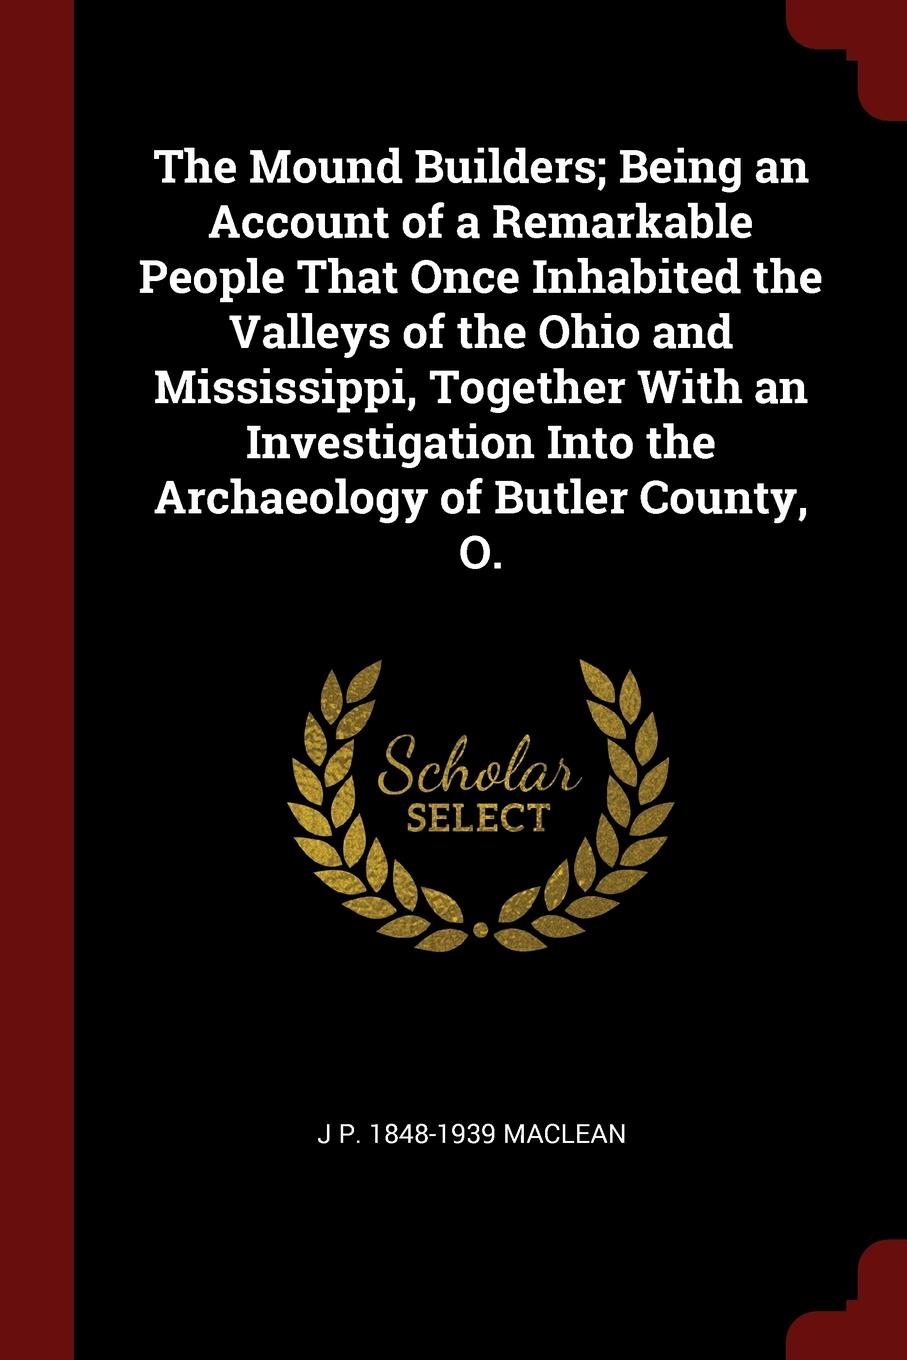 J P. 1848-1939 MacLean The Mound Builders; Being an Account of a Remarkable People That Once Inhabited the Valleys of the Ohio and Mississippi, Together With an Investigation Into the Archaeology of Butler County, O.